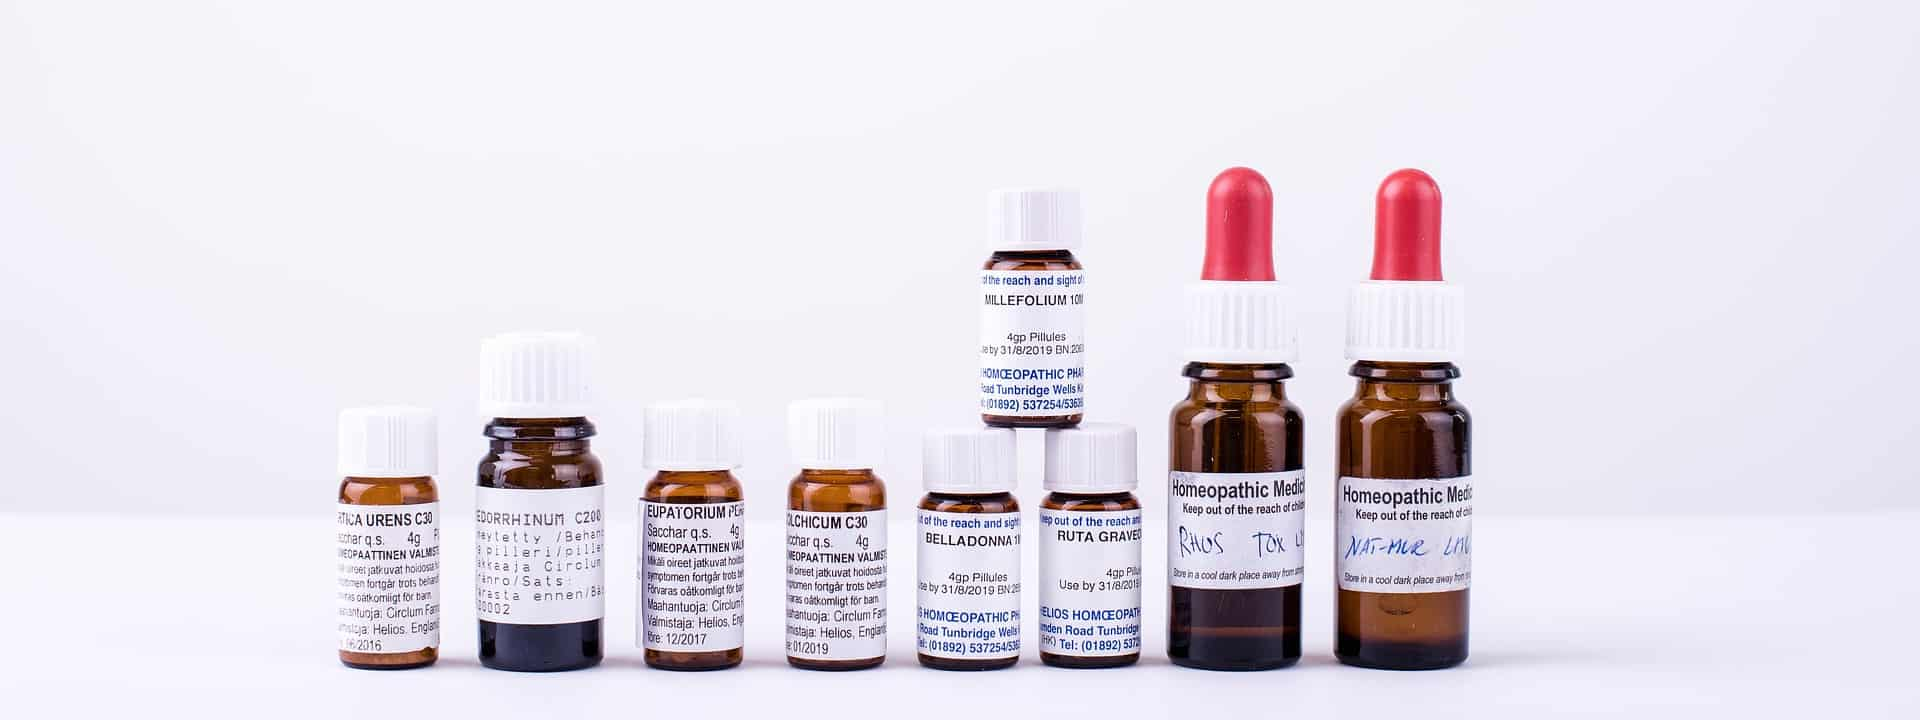 Homeopathic Medicines For Children With ADHD